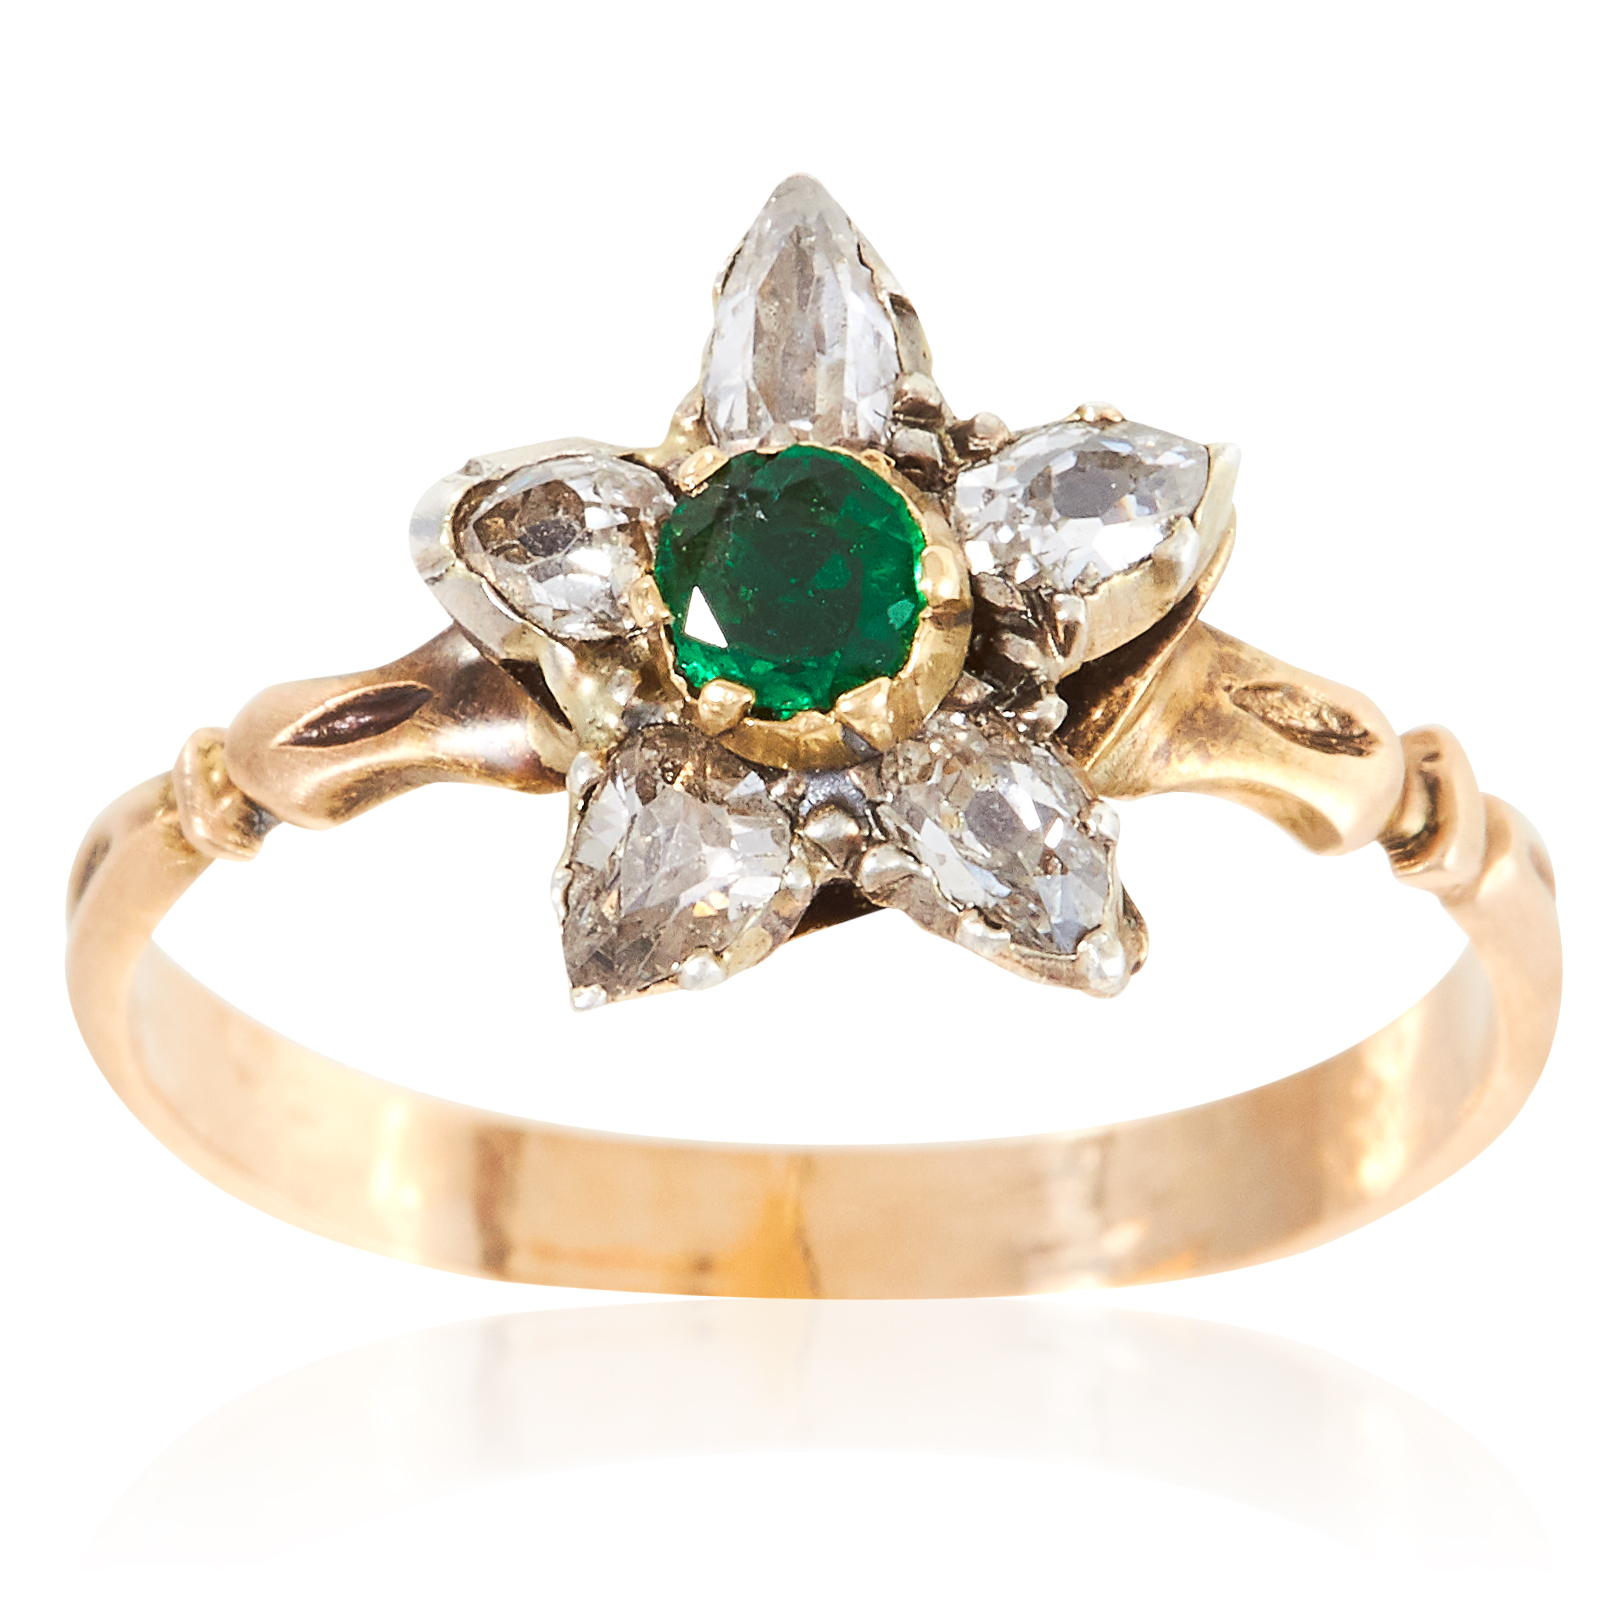 AN ANTIQUE EMERALD AND DIAMOND RING in high carat yellow gold, depicting a flower set with a round